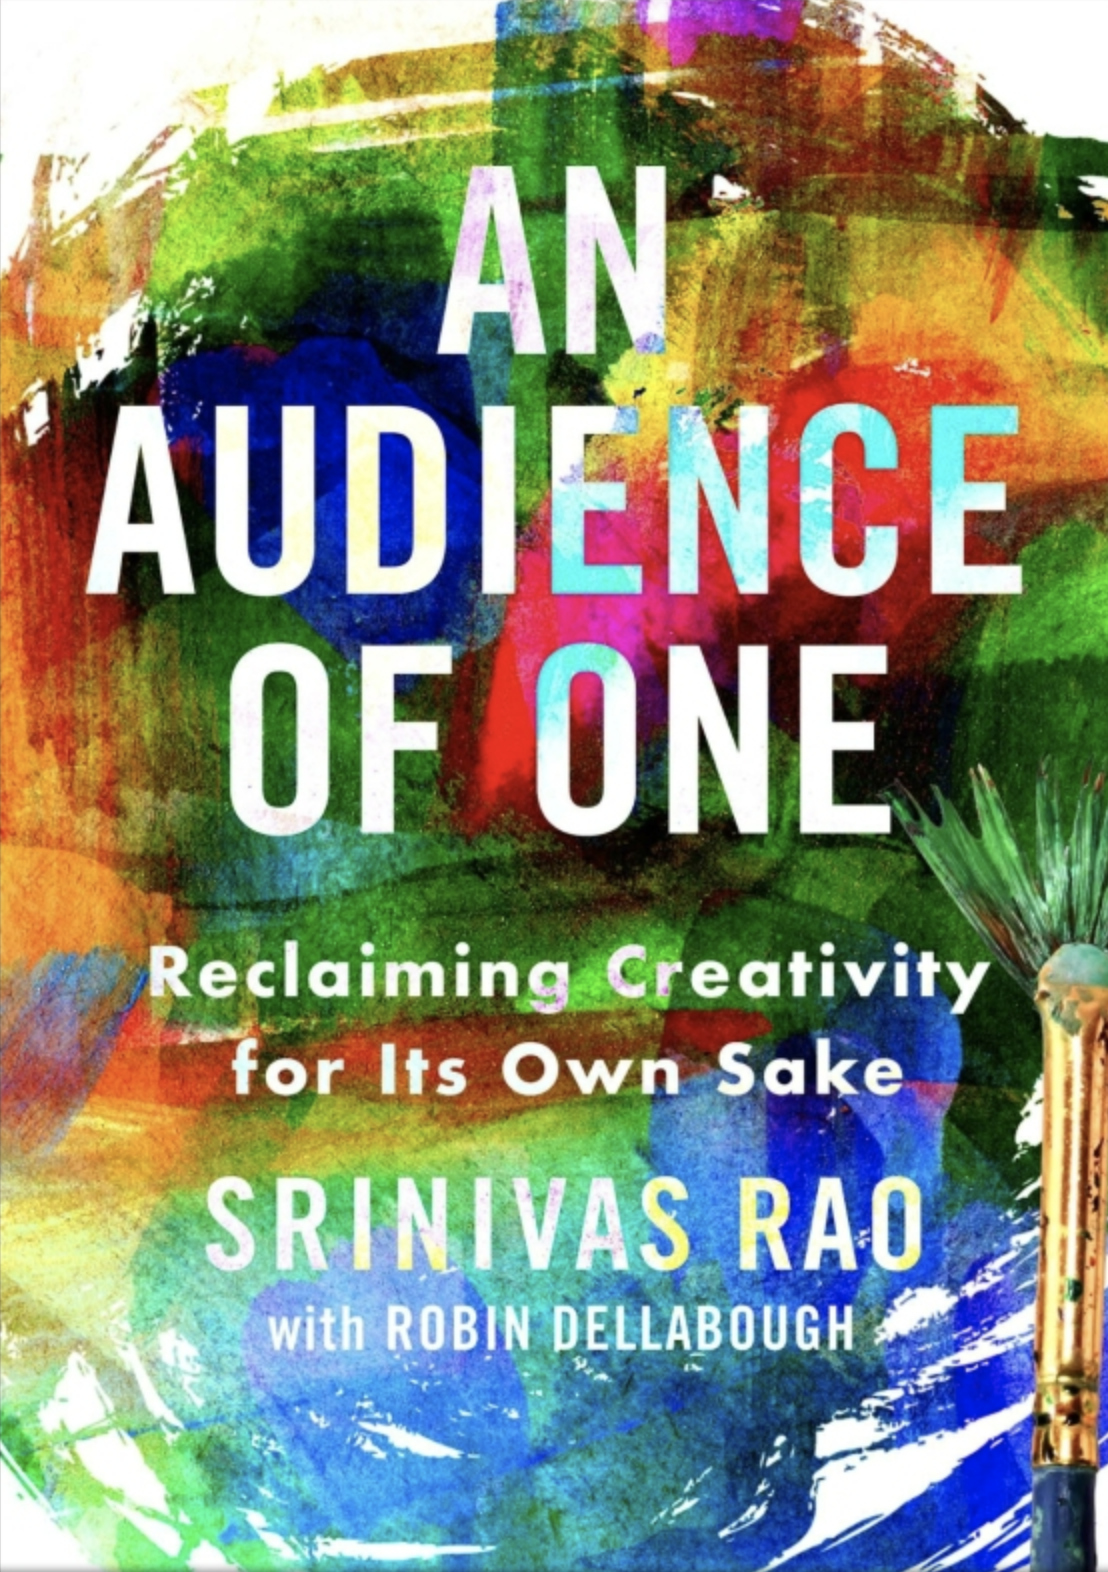 An Audience of One by Srinivas Rao